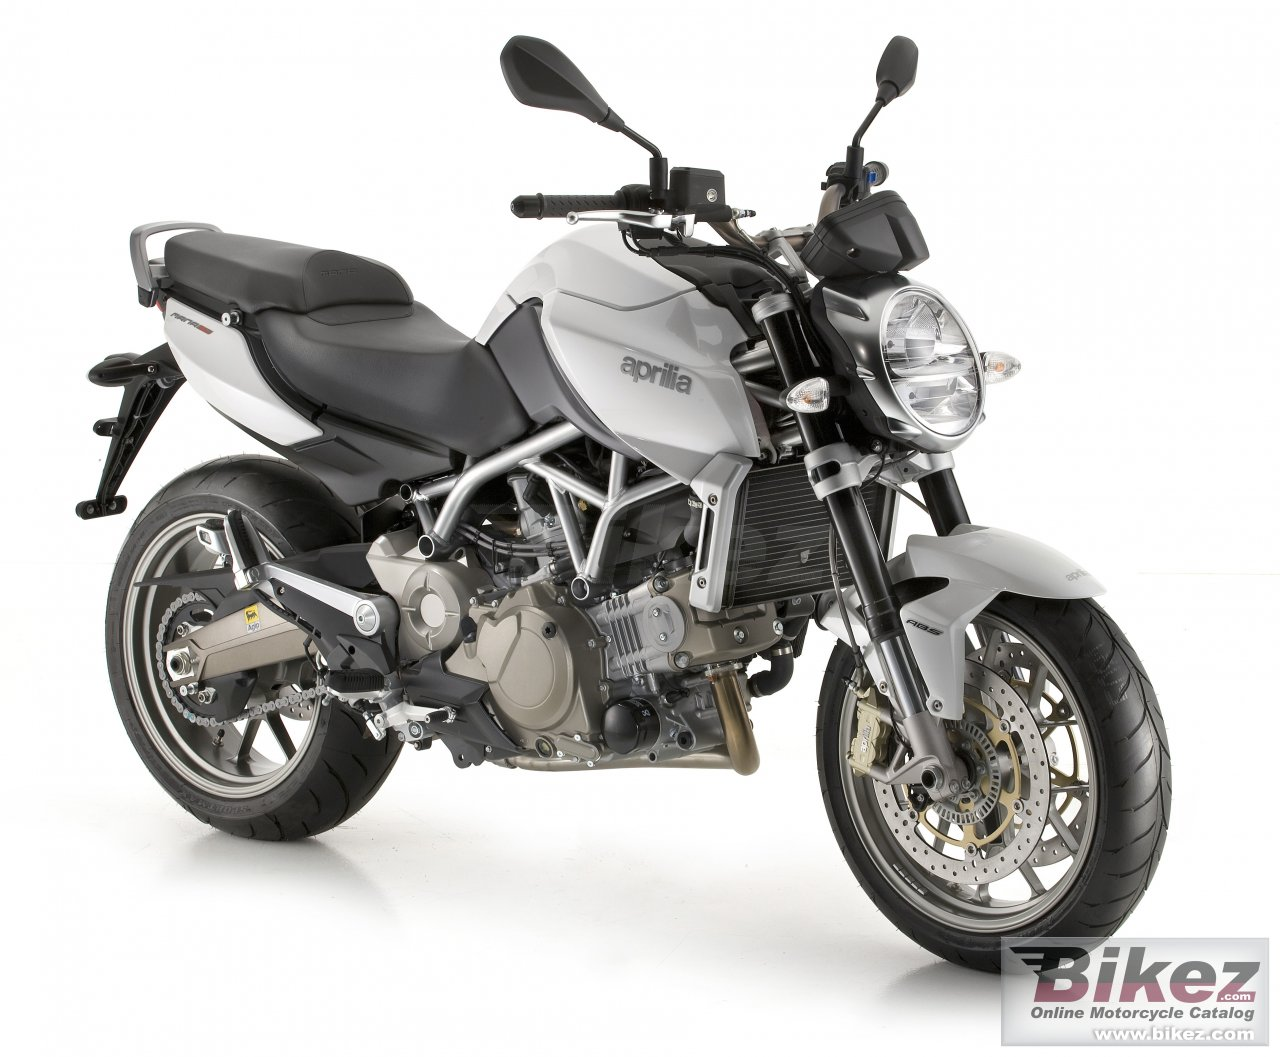 Big Aprilia mana 850 abs picture and wallpaper from Bikez.com